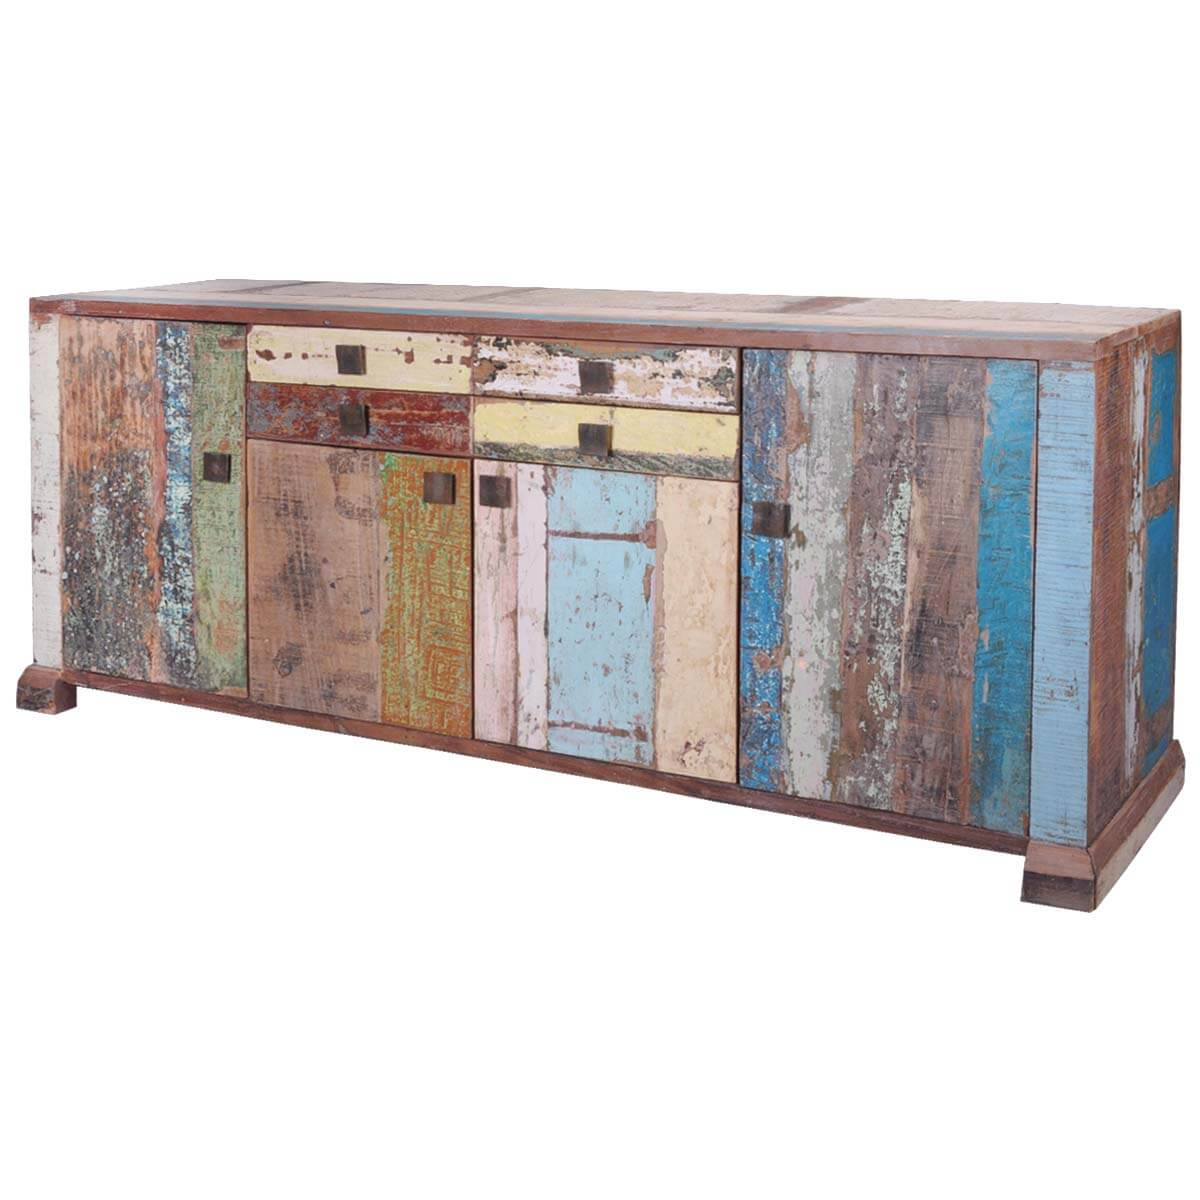 Reclaimed Wood Distressed Weathered Storage Cabinet